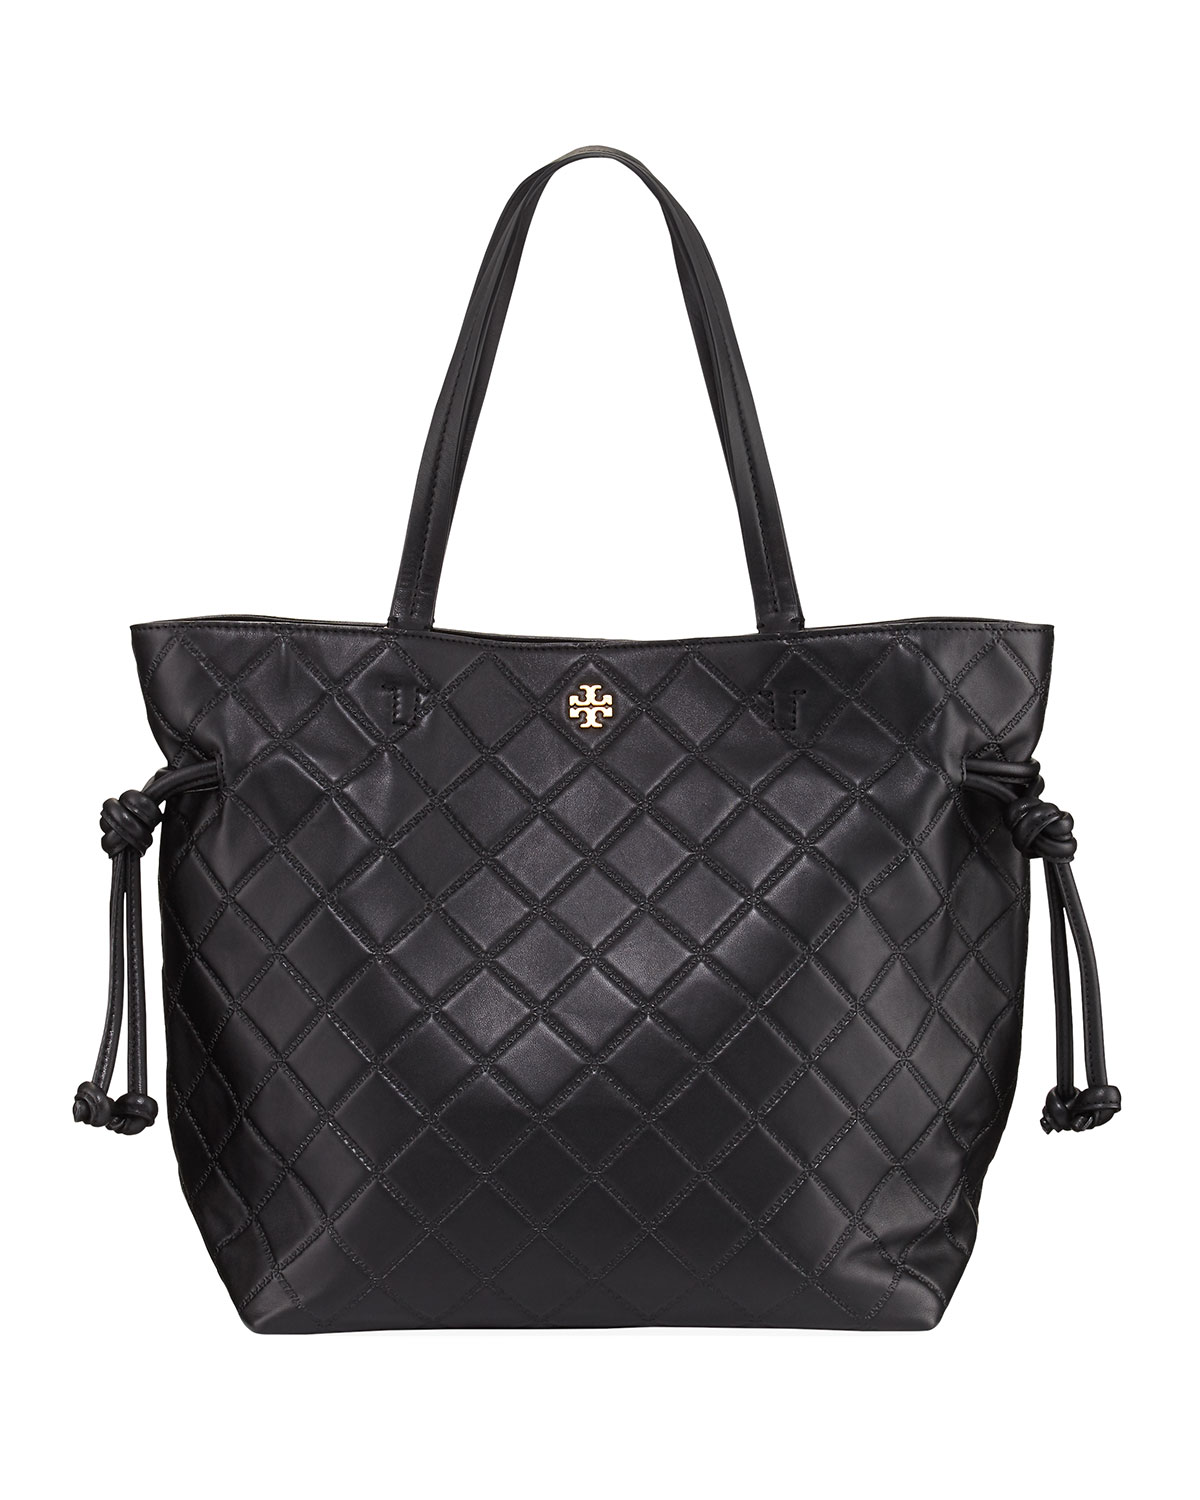 0bbe7ddc4c28 Tory Burch Georgia Slouchy Quilted Leather Tote Bag